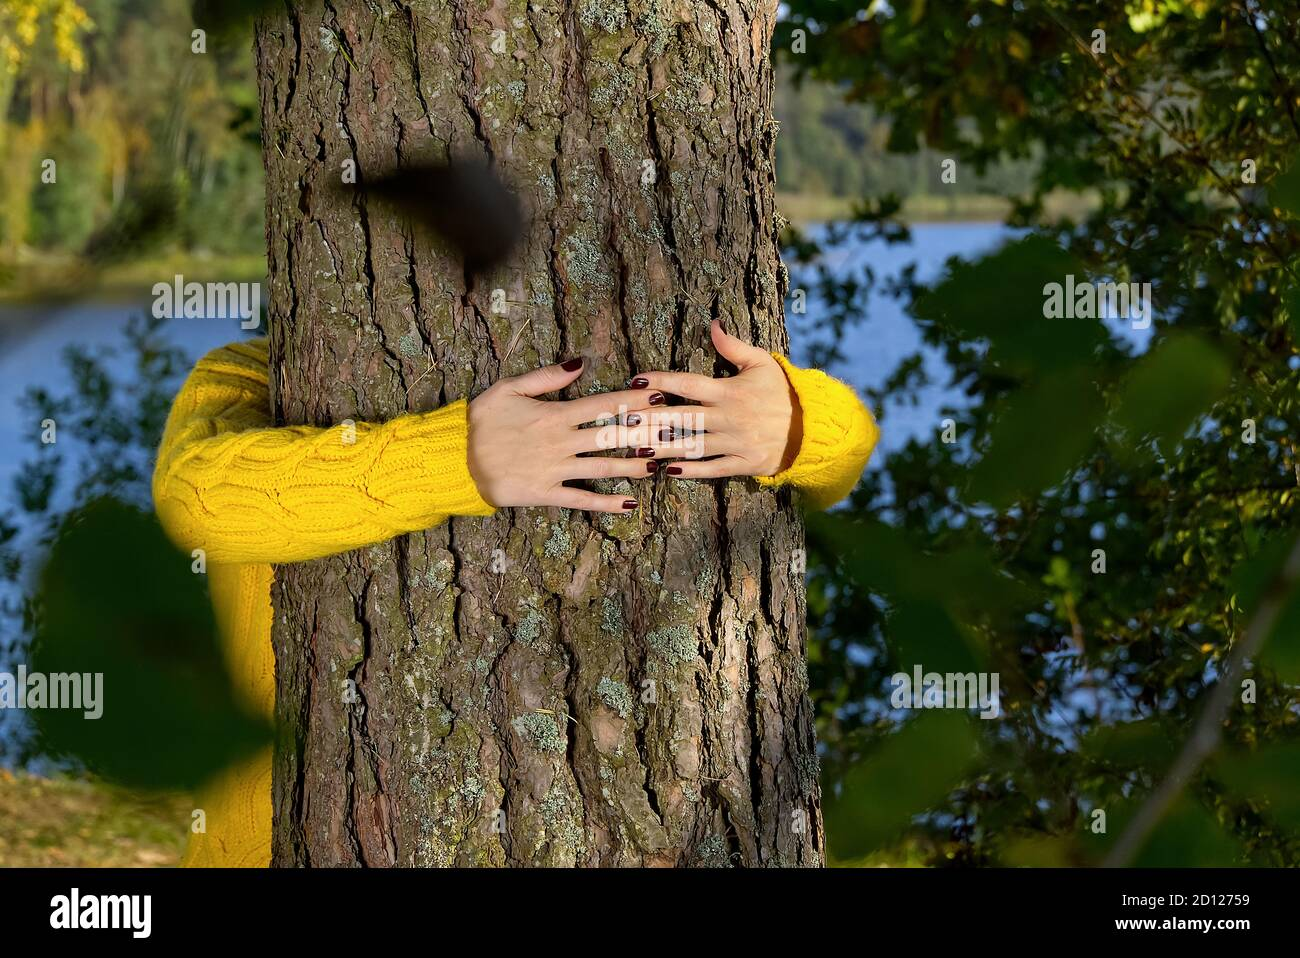 Woman hands hugging pine tree trunk in autumn forest Ecology and environment concept, eco lifestyle - change the world, protection for life and planet Stock Photo